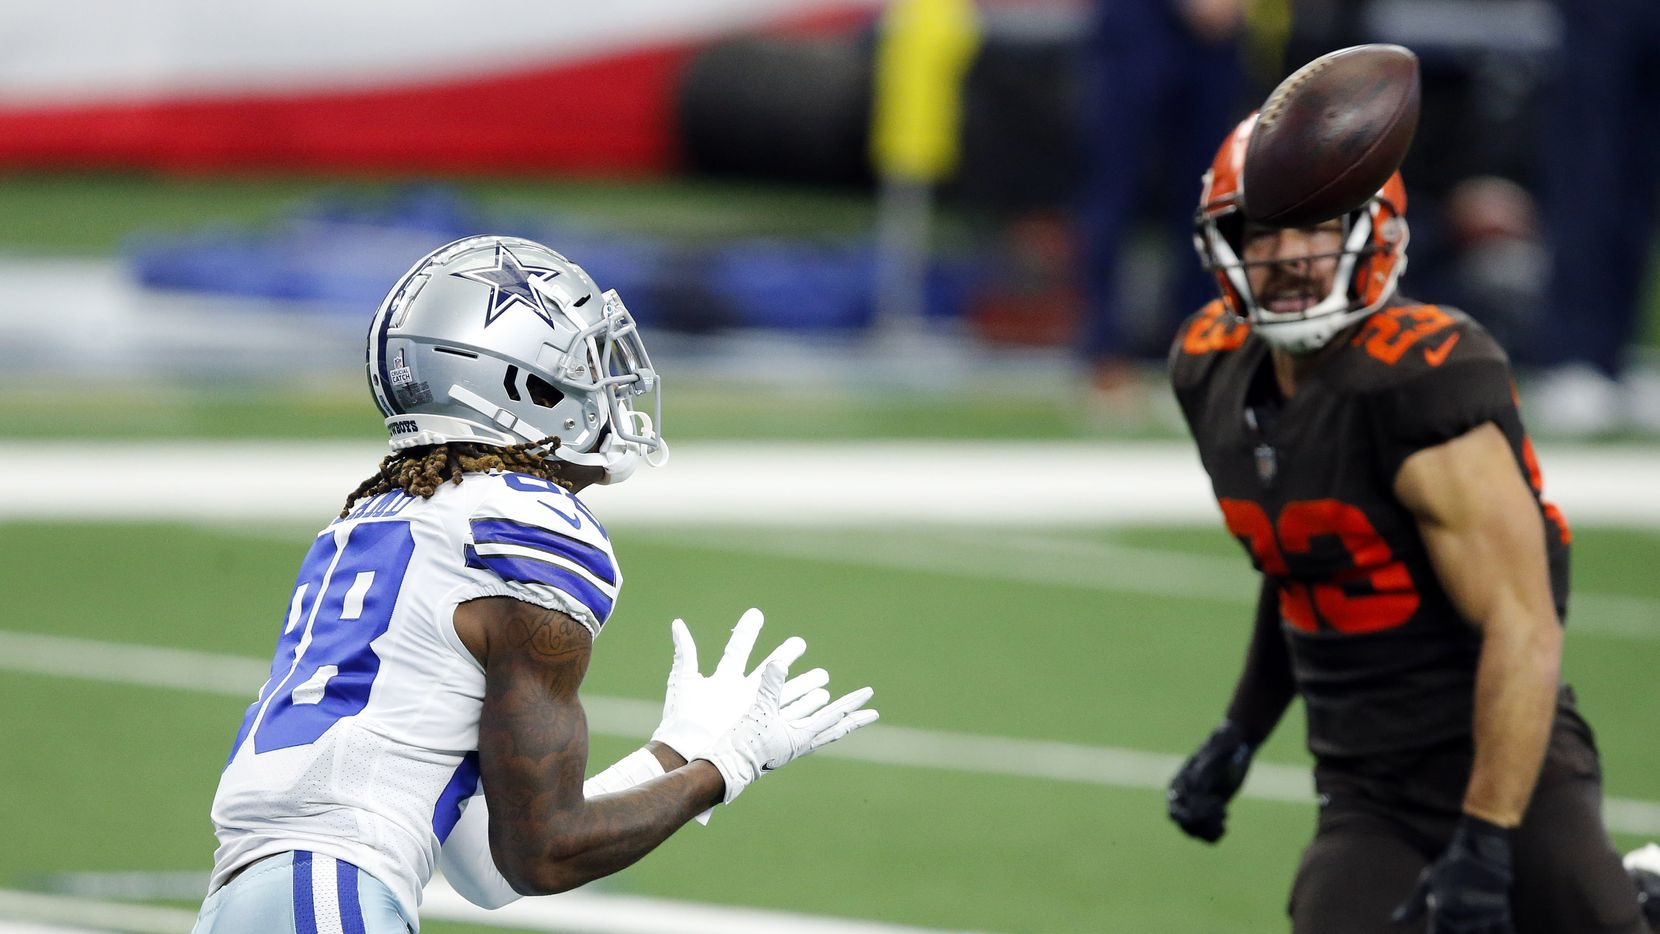 Cowboys wide receiver CeeDee Lamb (88) hauls in a long touchdown against Browns safety Andrew Sendejo (23) during the first quarter at AT&T Stadium in Arlington on Sunday, Oct. 4, 2020.